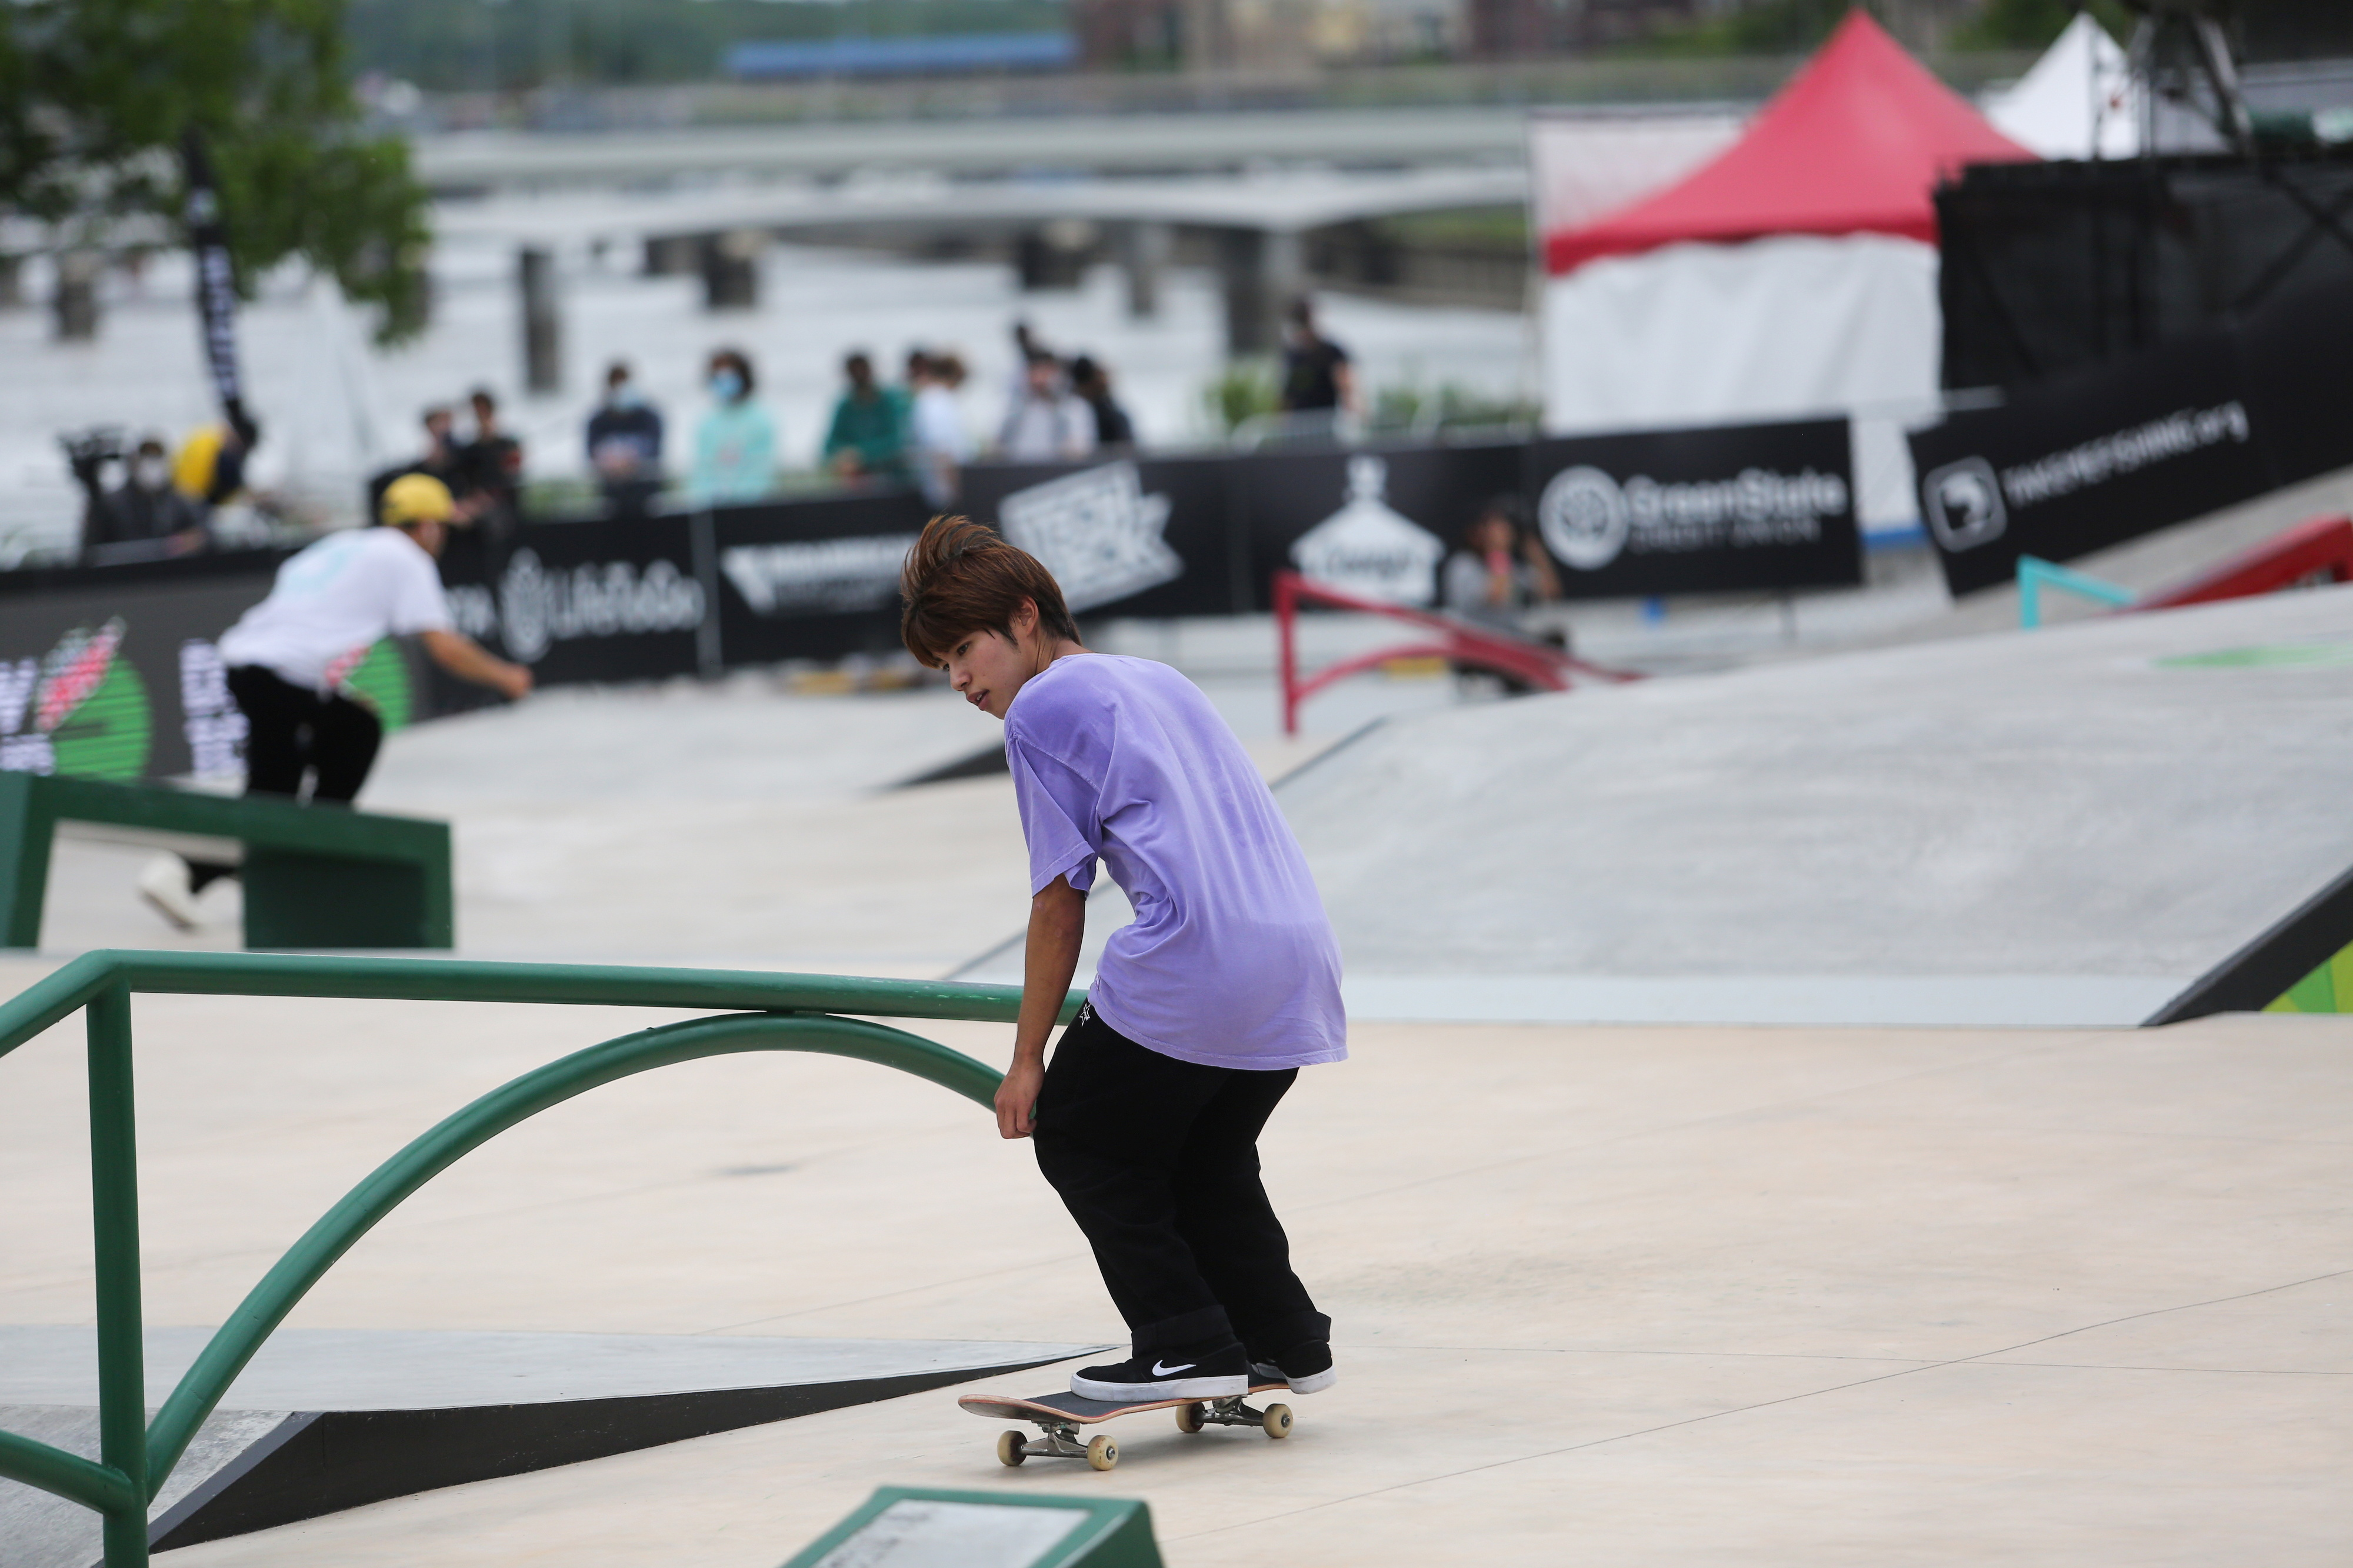 Skateboarder Yuto Horigome practices during a stop on the Dew Tour, which showcases athletes before skateboarding makes its Olympic debut in Tokyo, at Lauridsen Park in Des Moines, Iowa, U.S., May 20, 2021.  REUTERS/Rachel Mummey